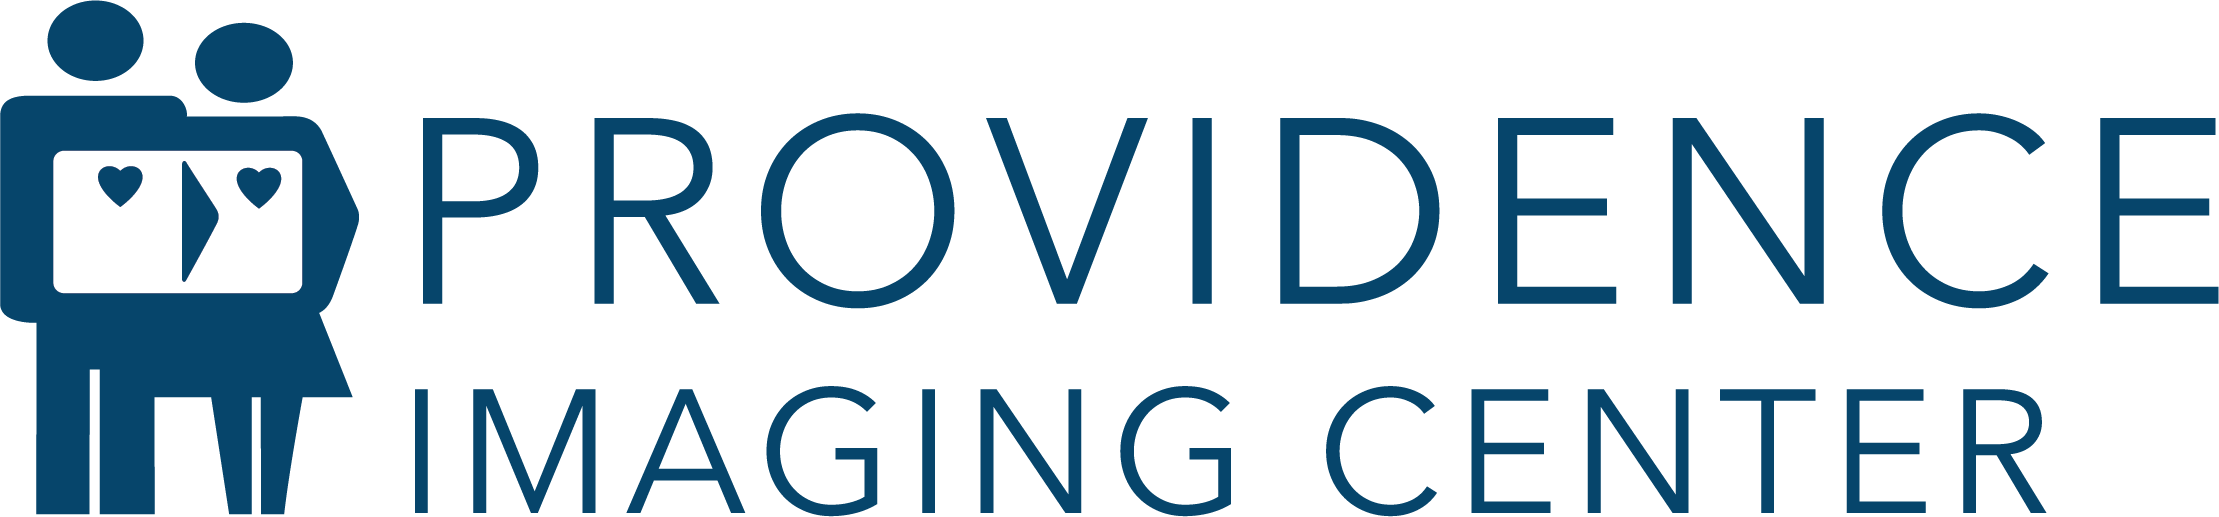 Providence Imaging Center logo